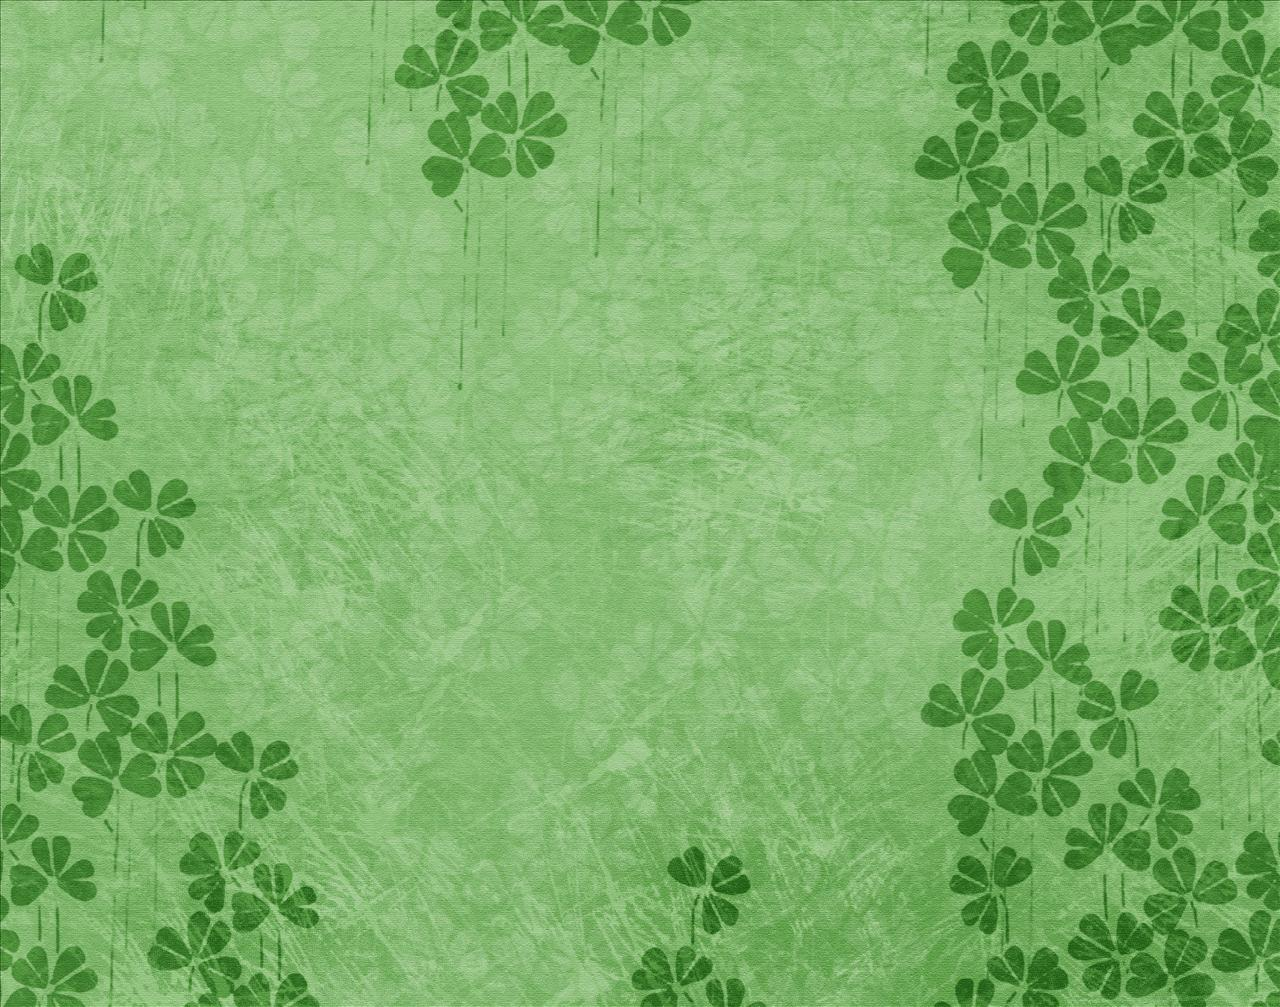 Irish Clover Background Celtic shamroc 1280x1007